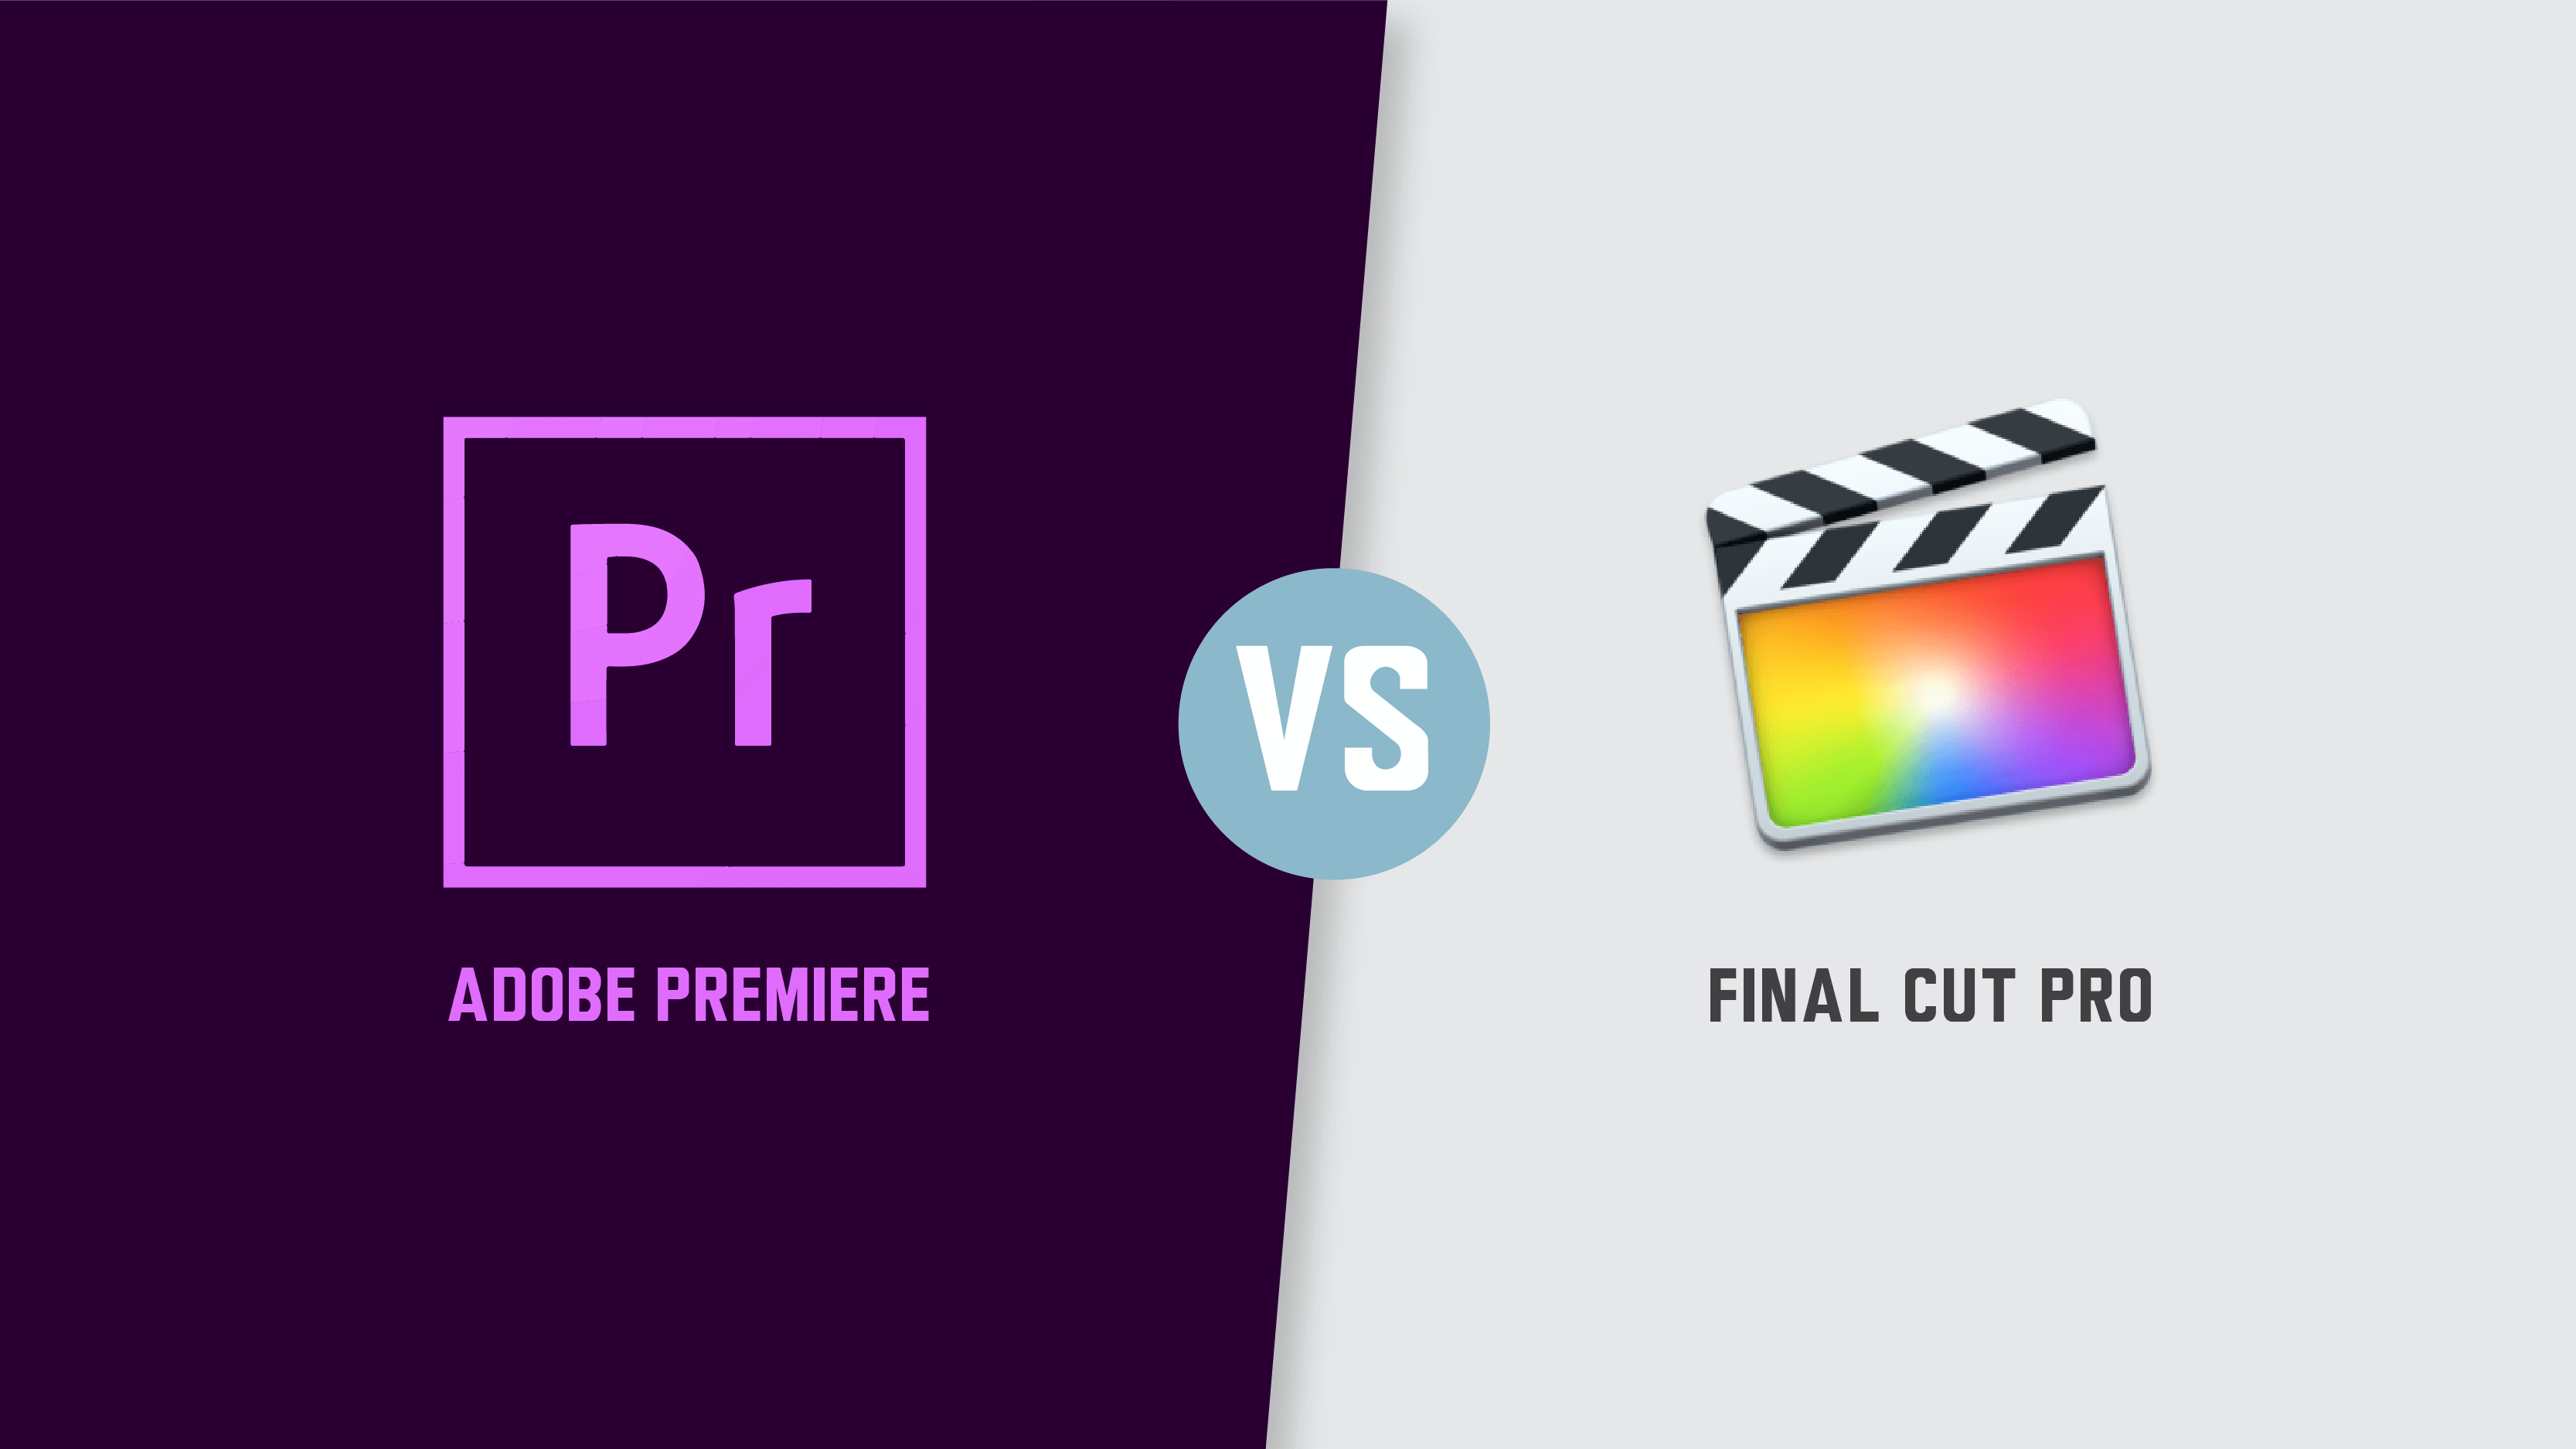 Adobe Premiere vs Final Cut Pro: a Super Practical